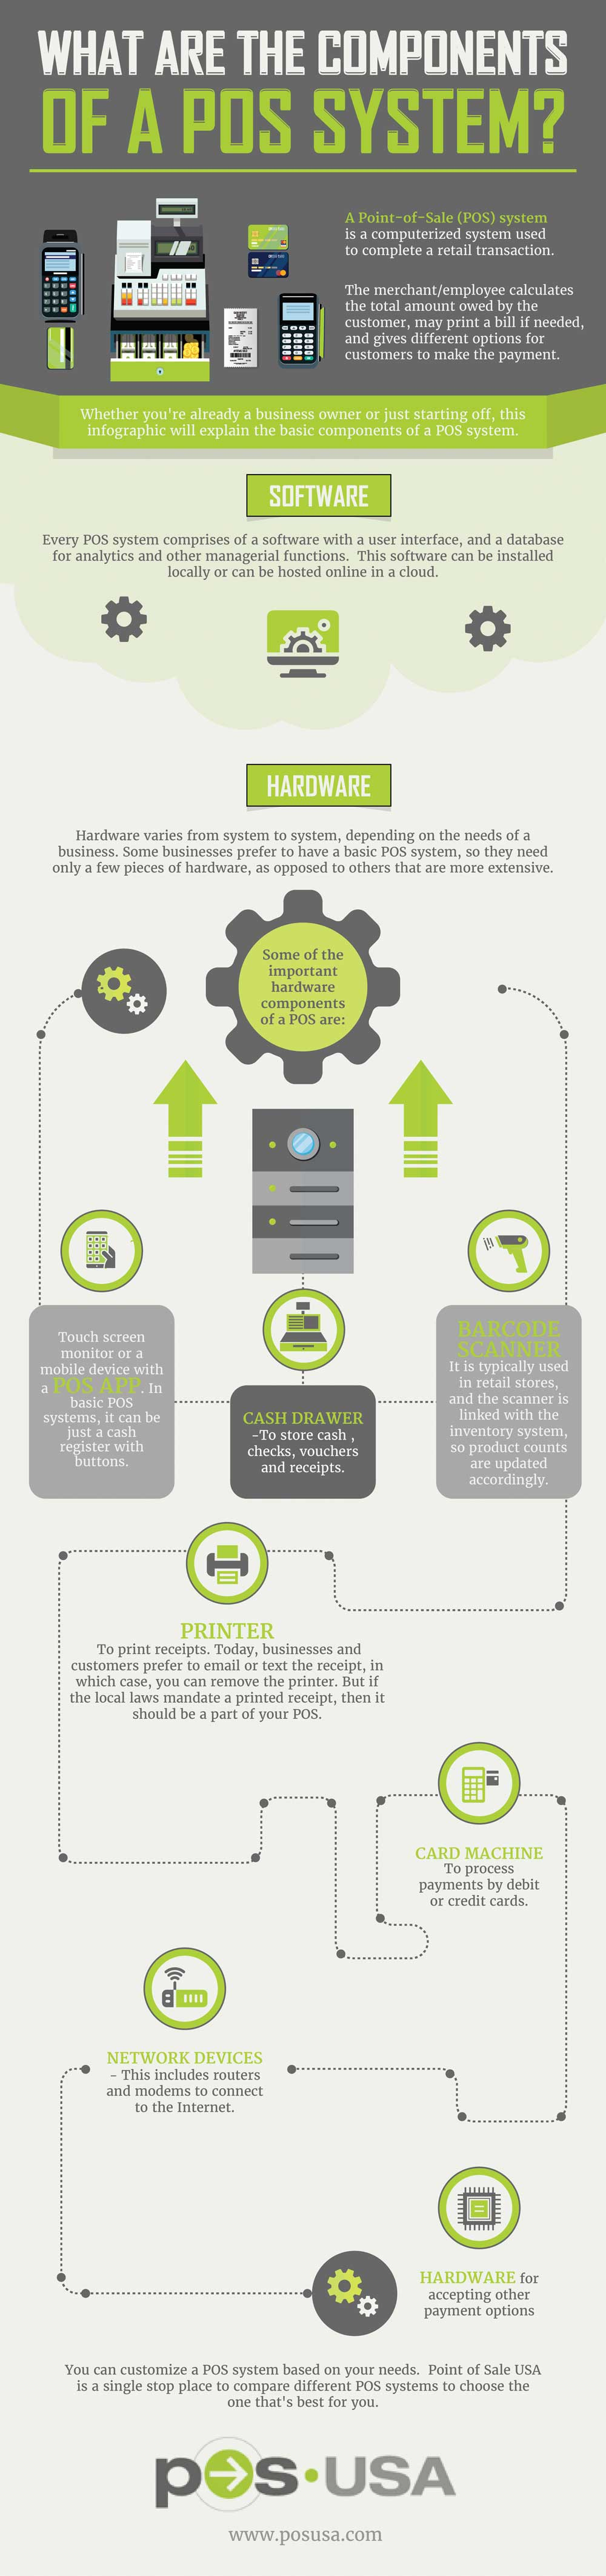 Key Components of a POS System - Infographic Diagram